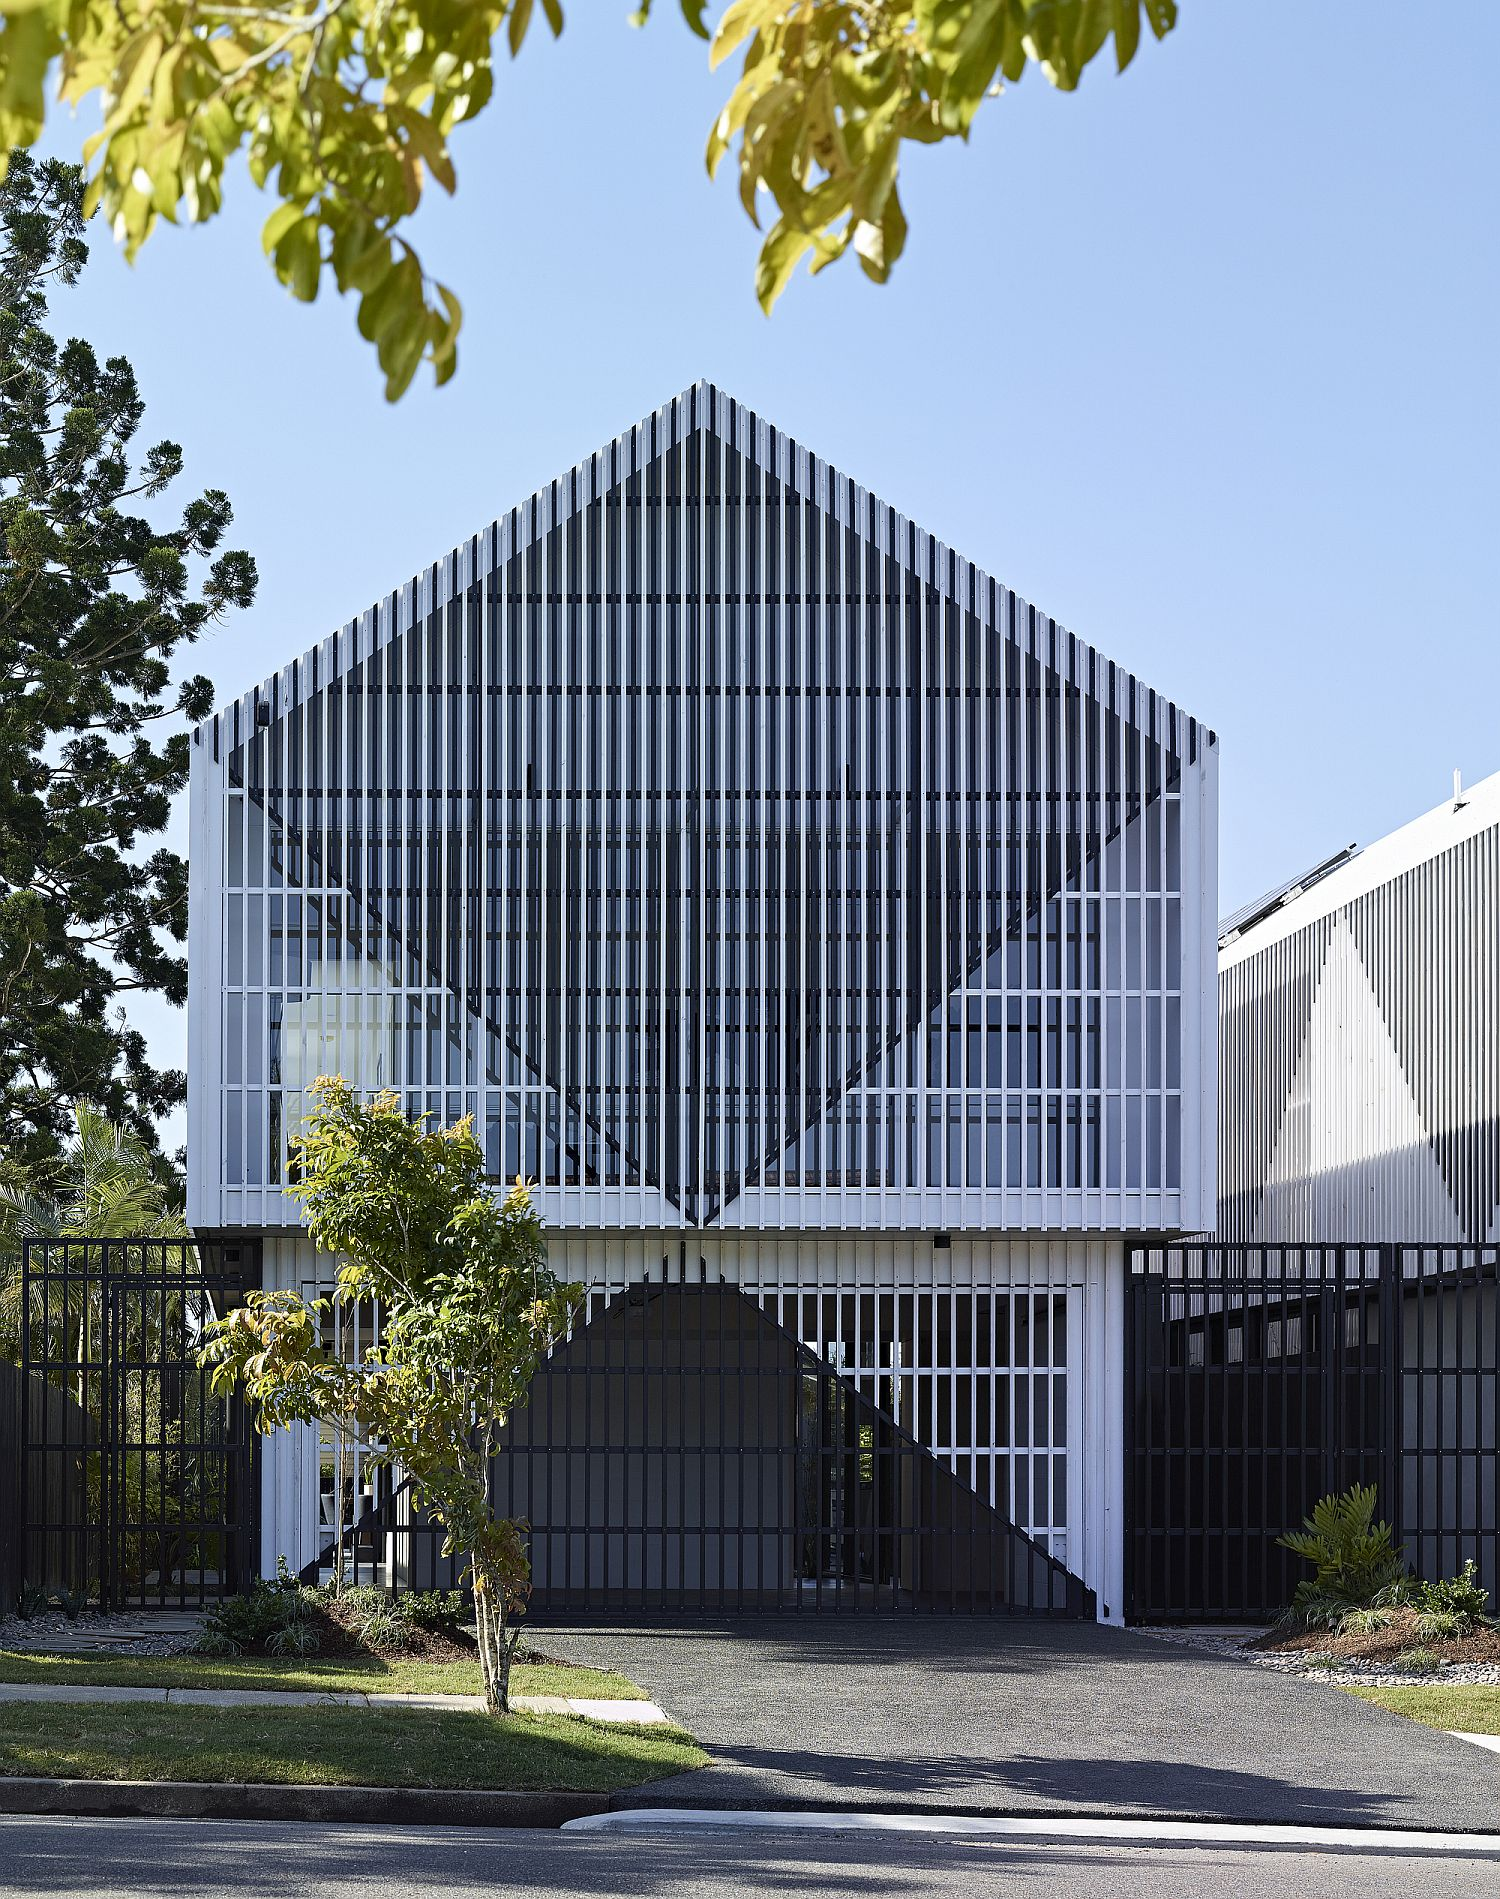 Batten-screened façade of the house offers the right amount of privacy